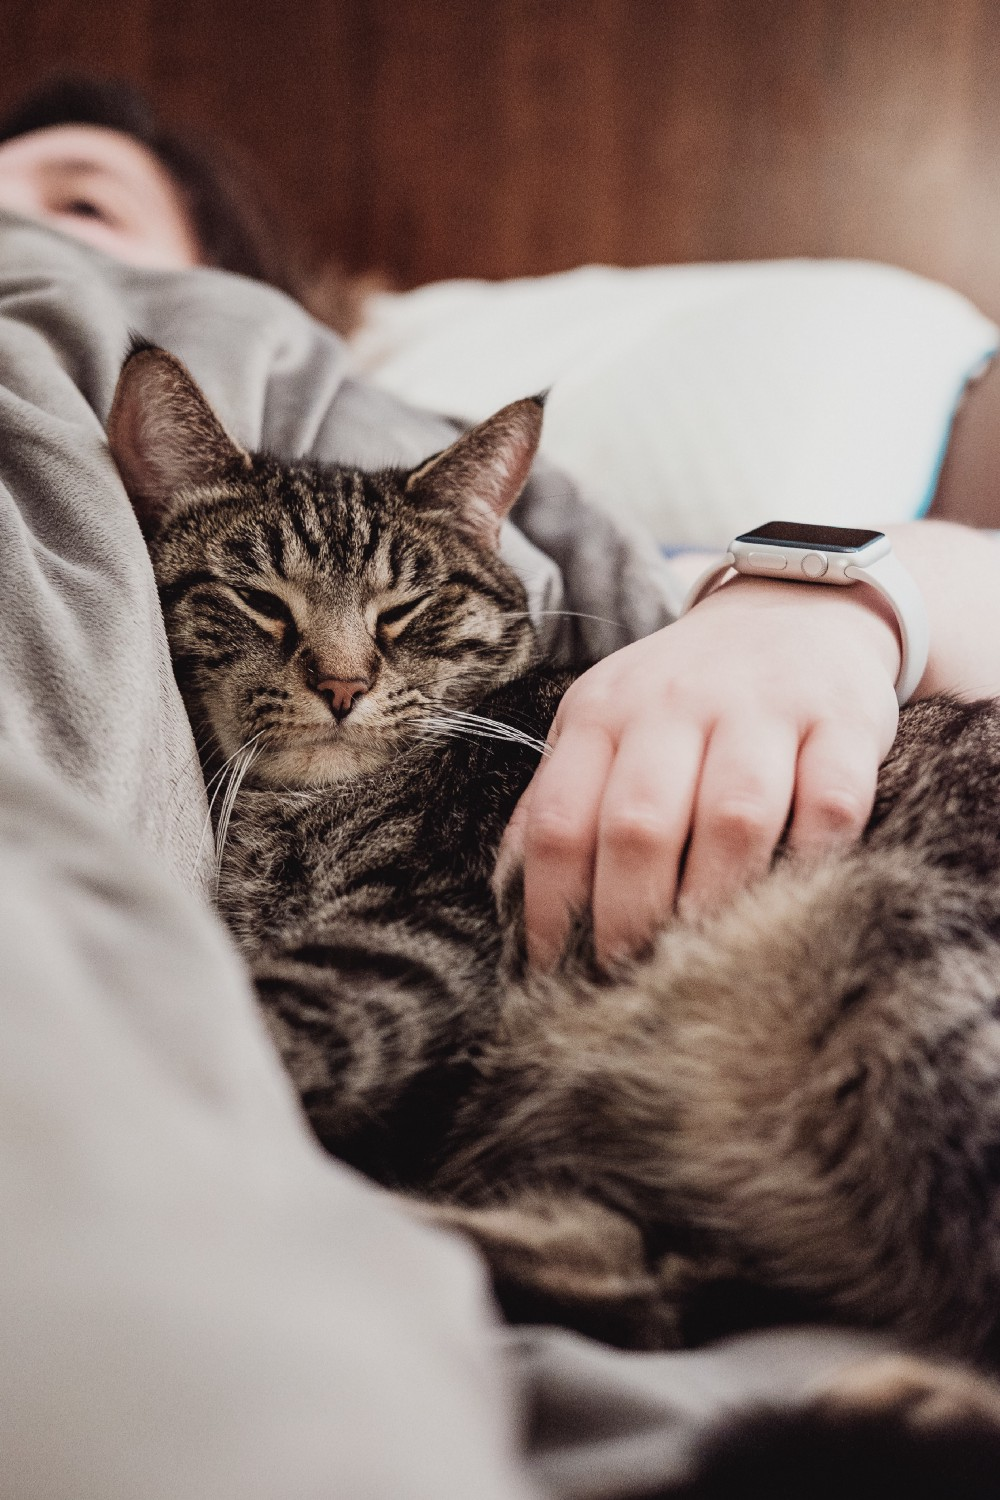 An image of a cat snuggling with its owner.